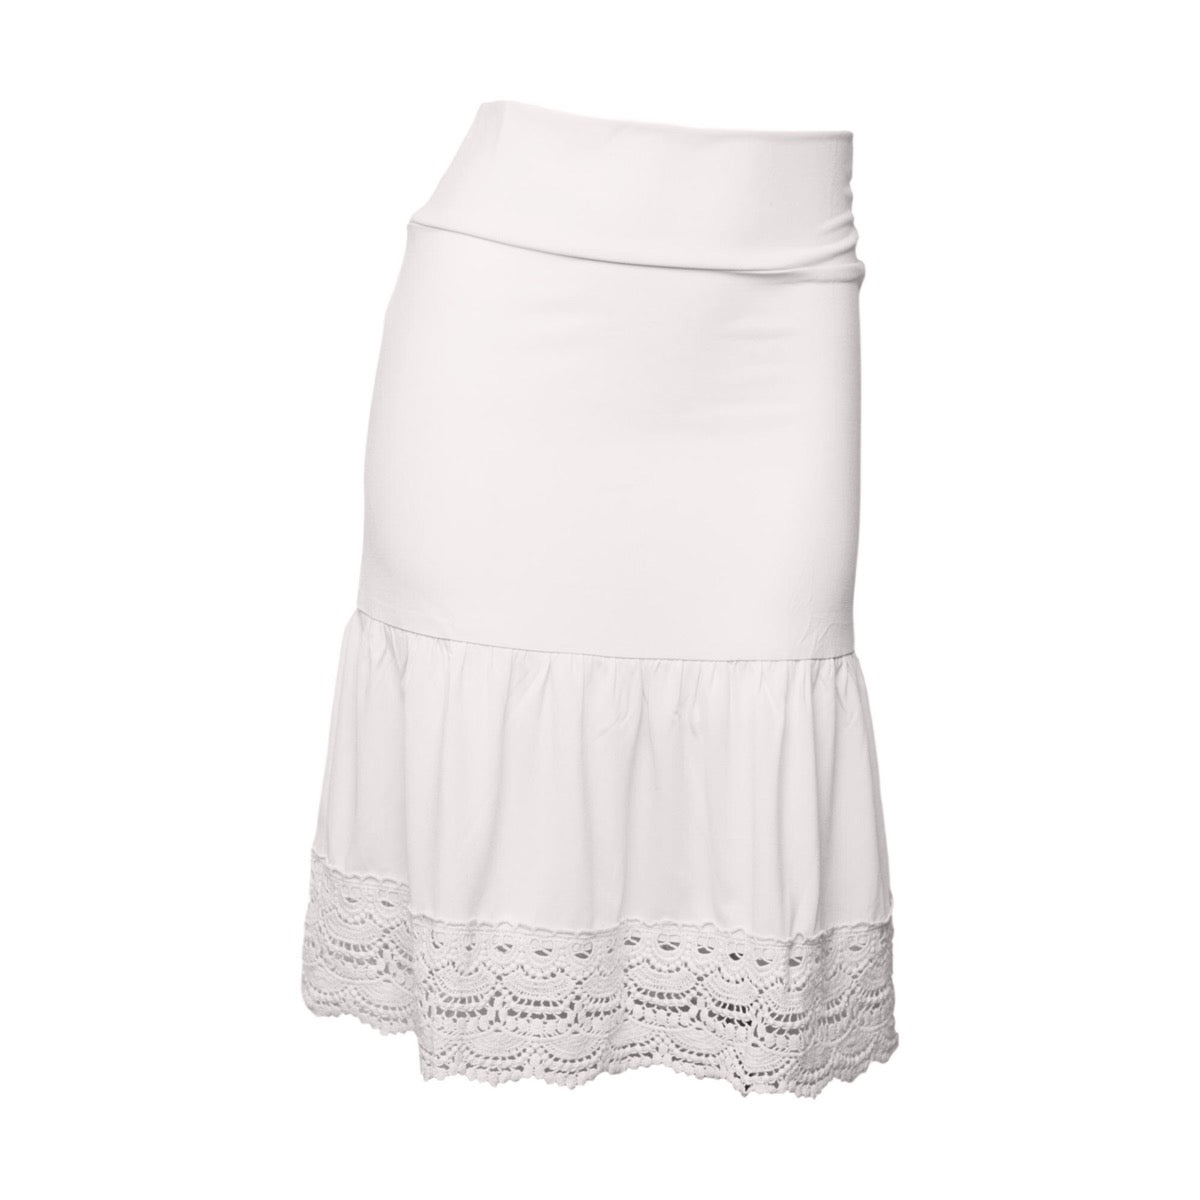 Desert Rose Half Slip | bleach white, skirt extenders, Peekaboo Chic | Modest Layering Apparel for women